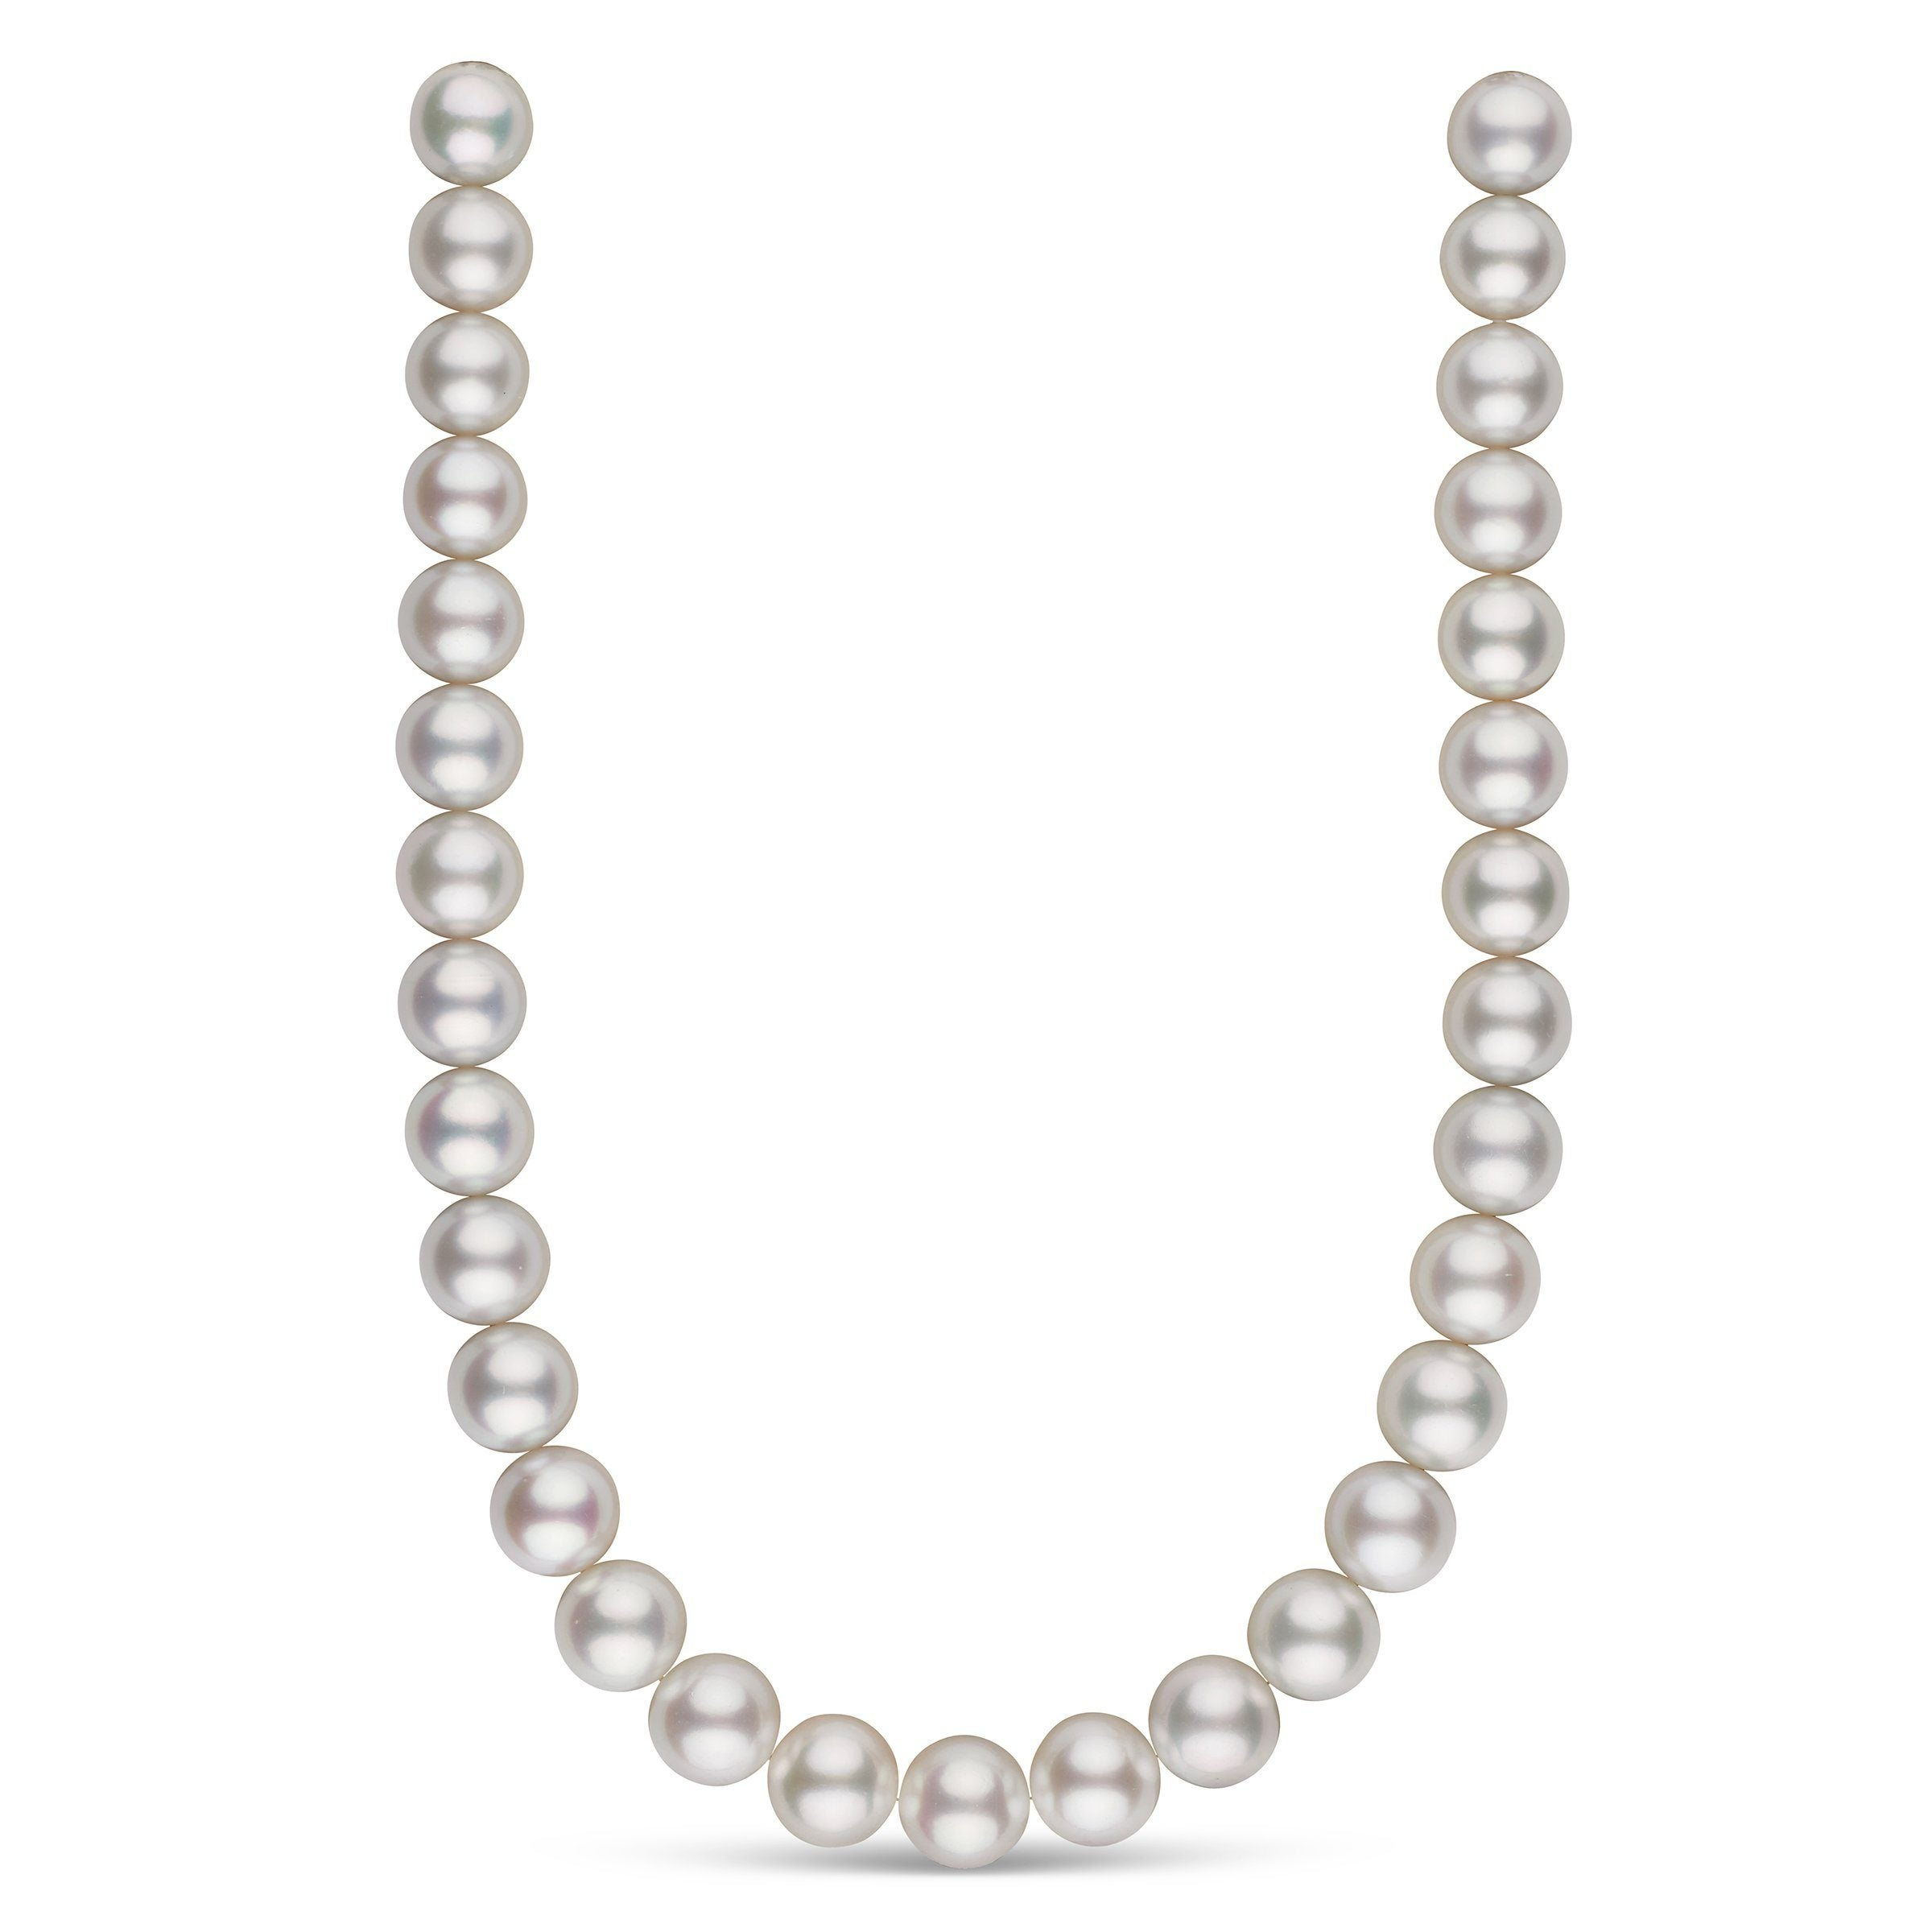 Piano Sonata No. 14 White South Sea Pearl Necklace